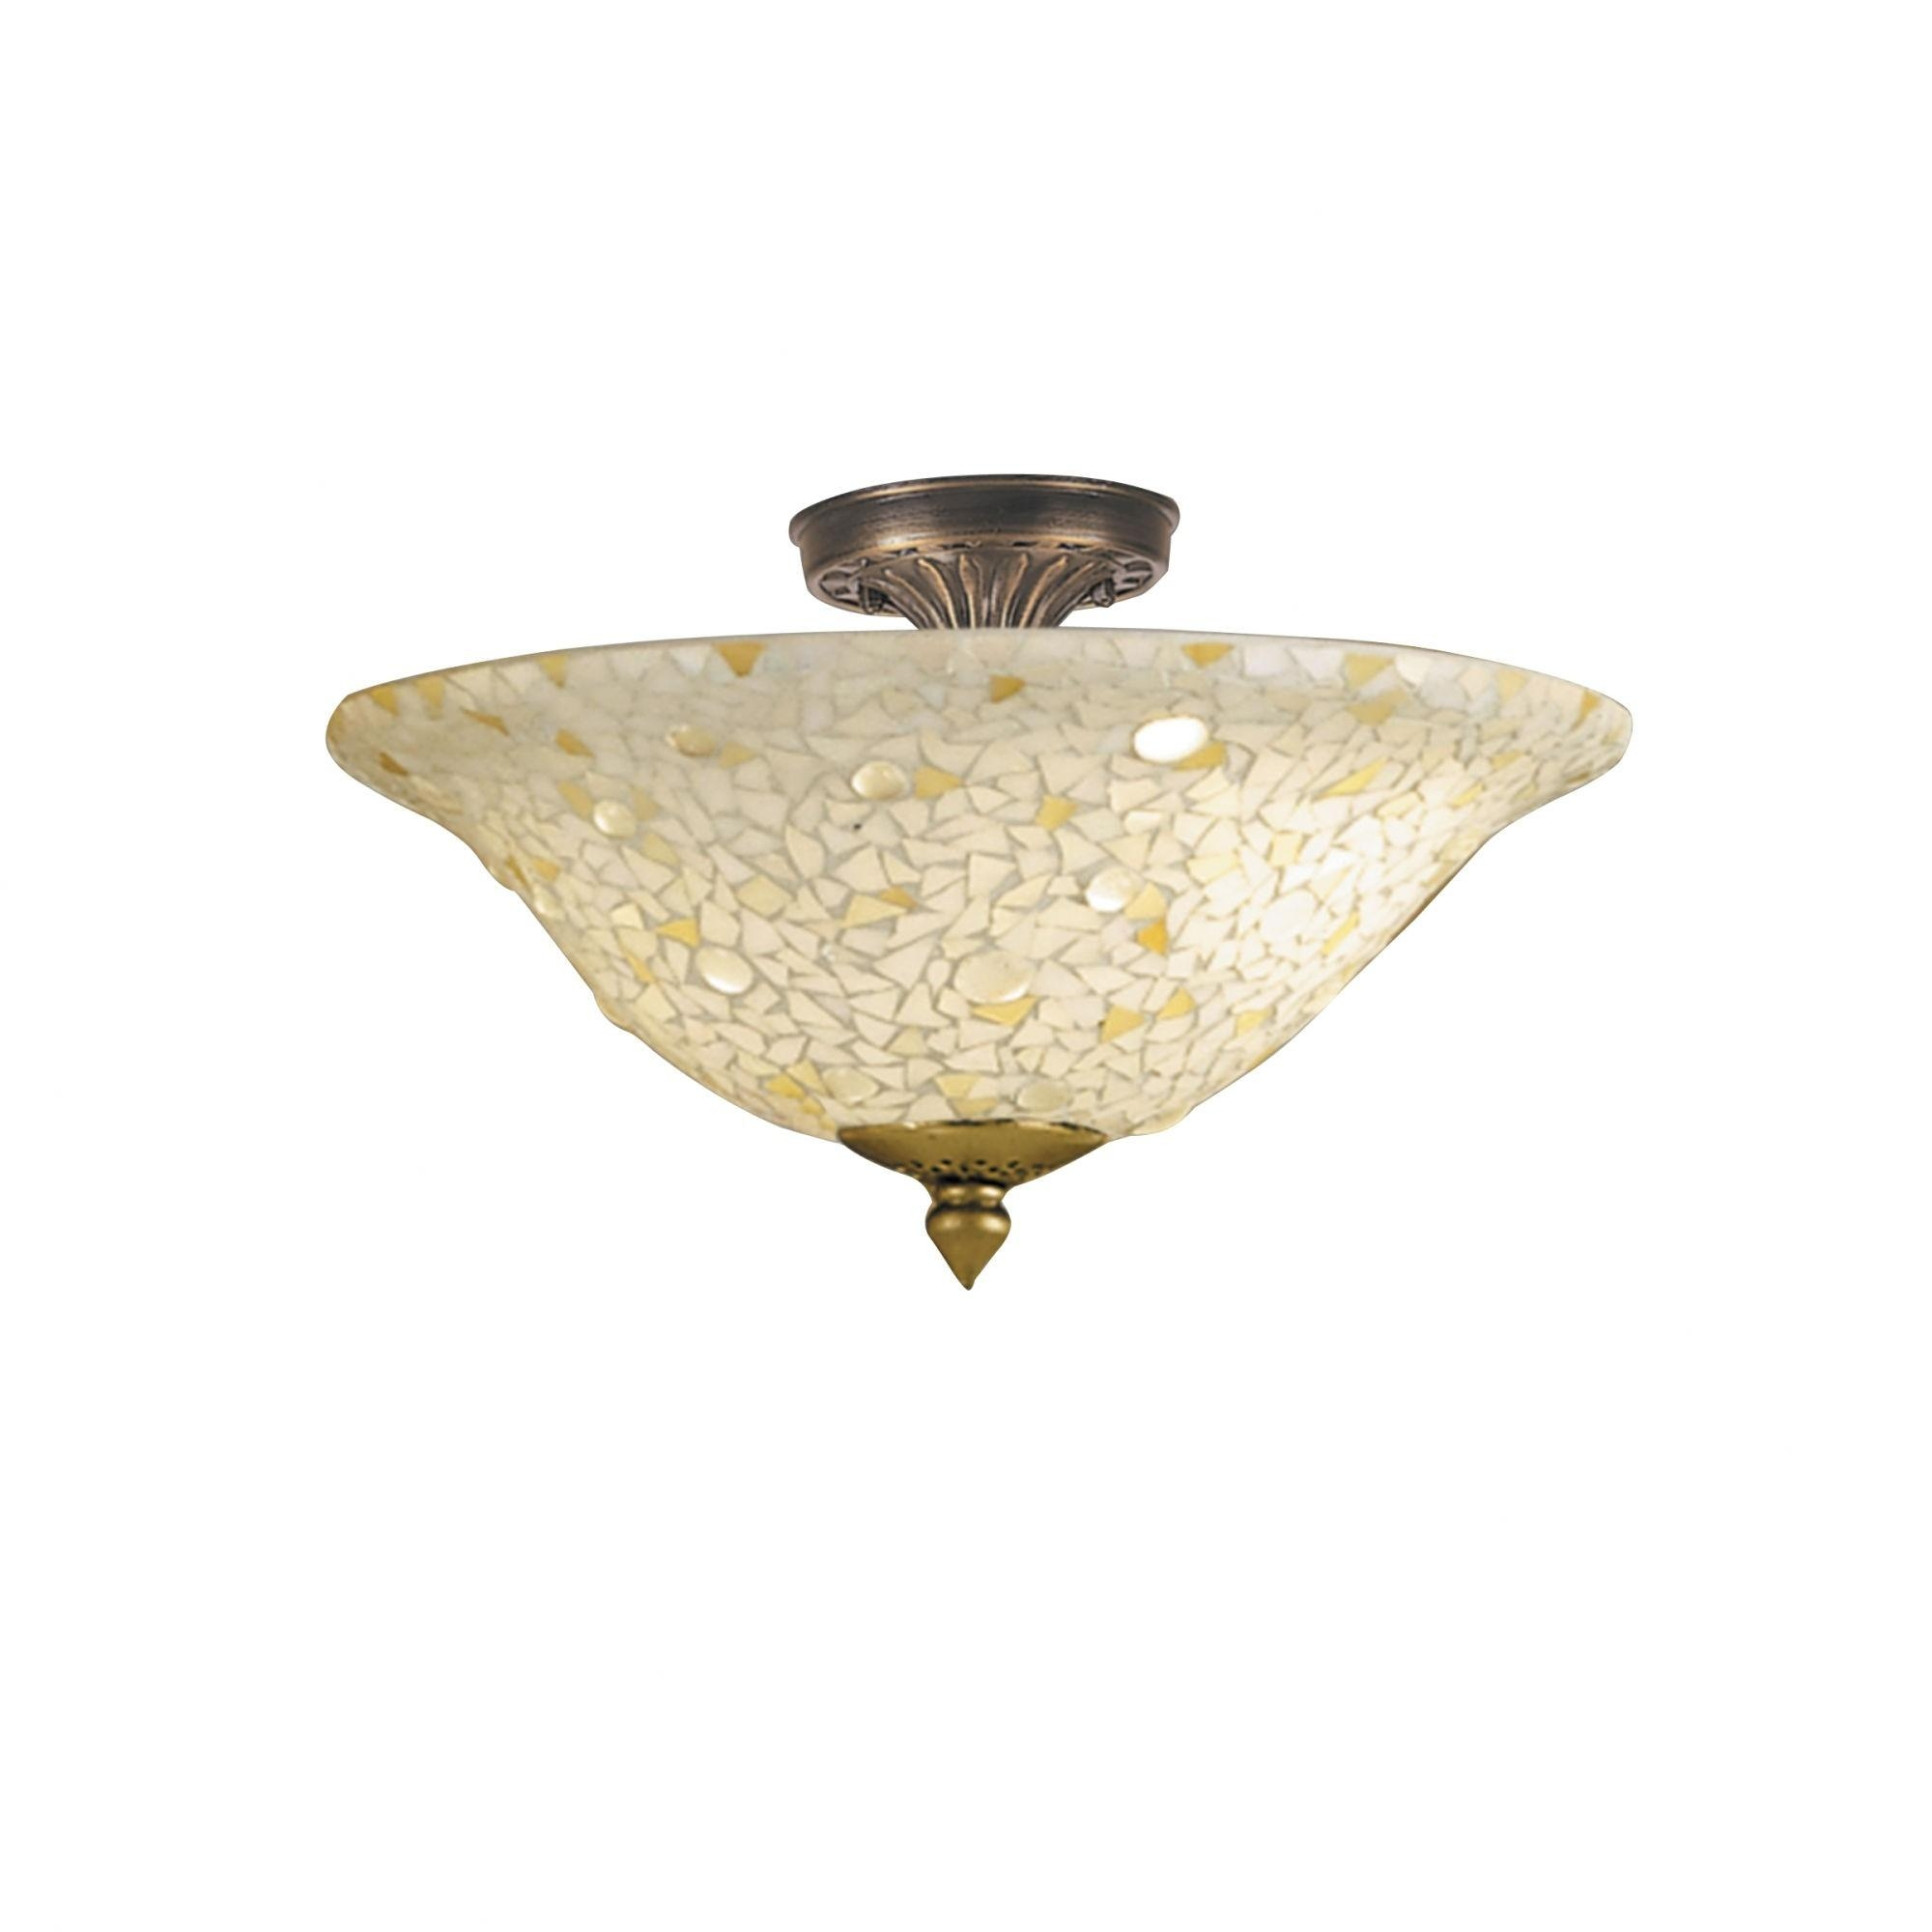 Home Decor : Flush Mount Led Ceiling Light Fixtures Wall Mirror Within Mirror Ceiling Light (View 15 of 20)